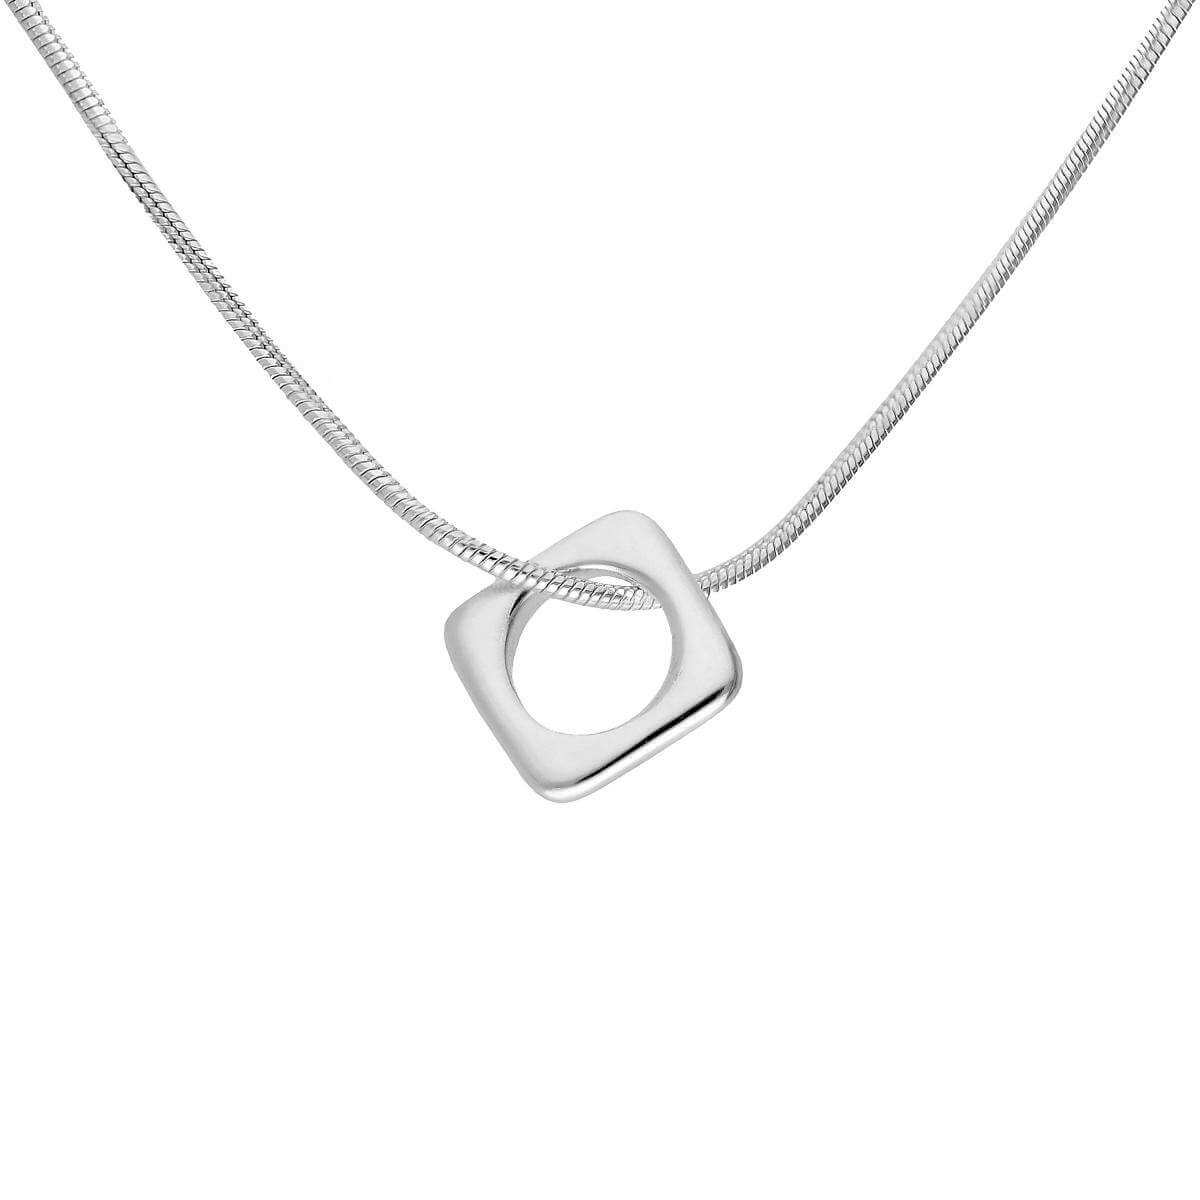 Slim Sterling Silver Square Pendant Necklace